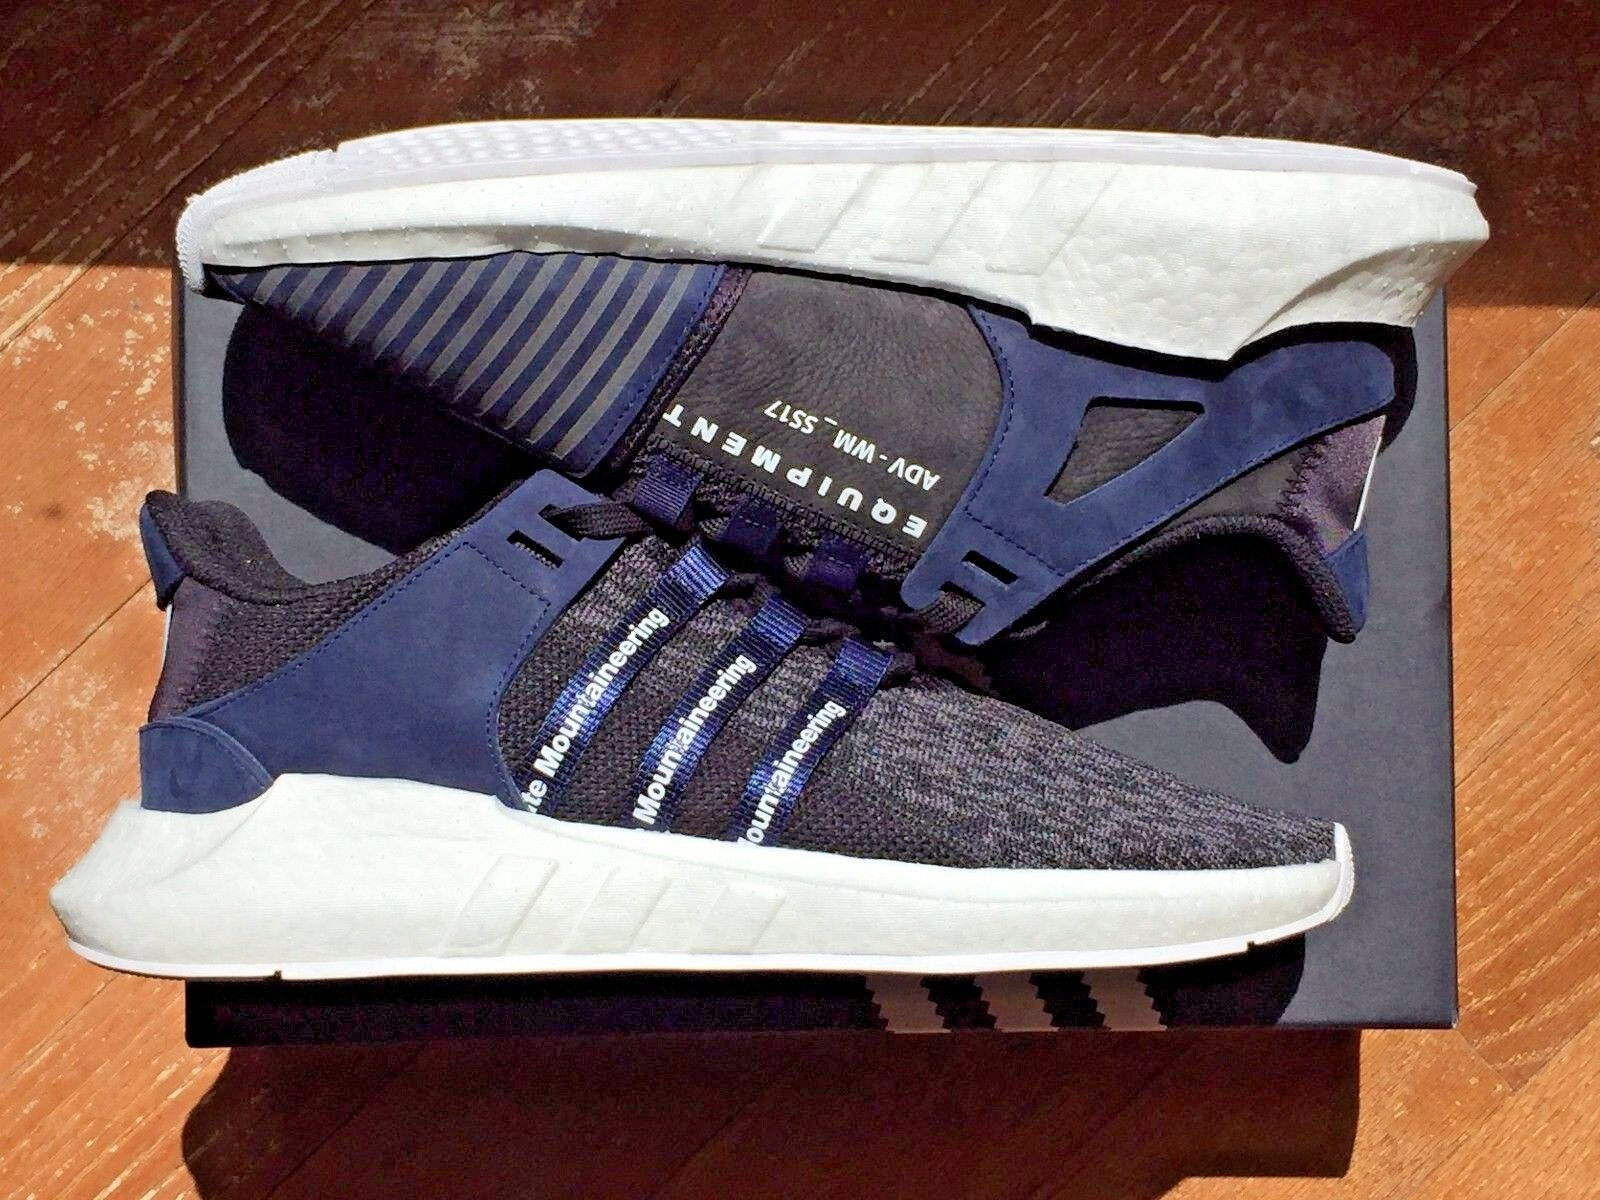 White Mountaineering x Adidas EQT Support Future 93 17 Size 11.5 shoes (BB3127)